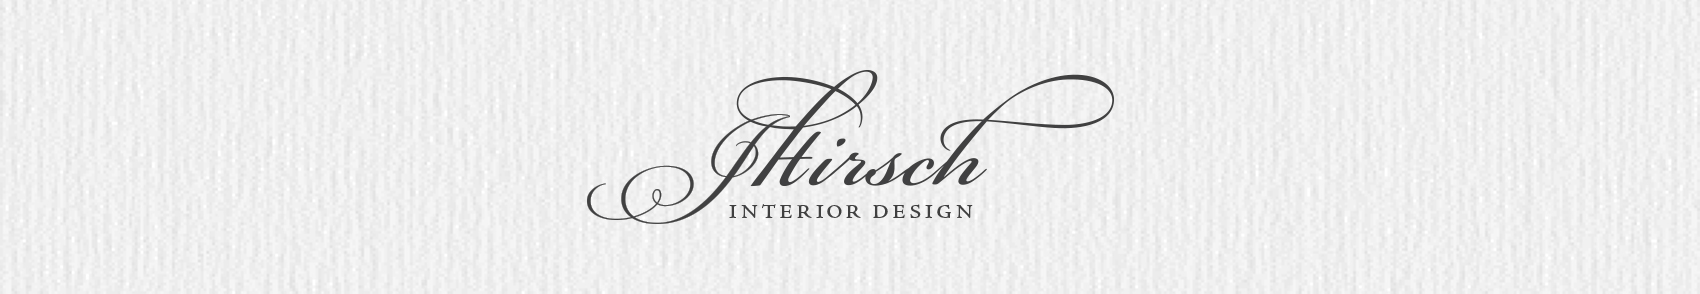 JHirsch Interior Design